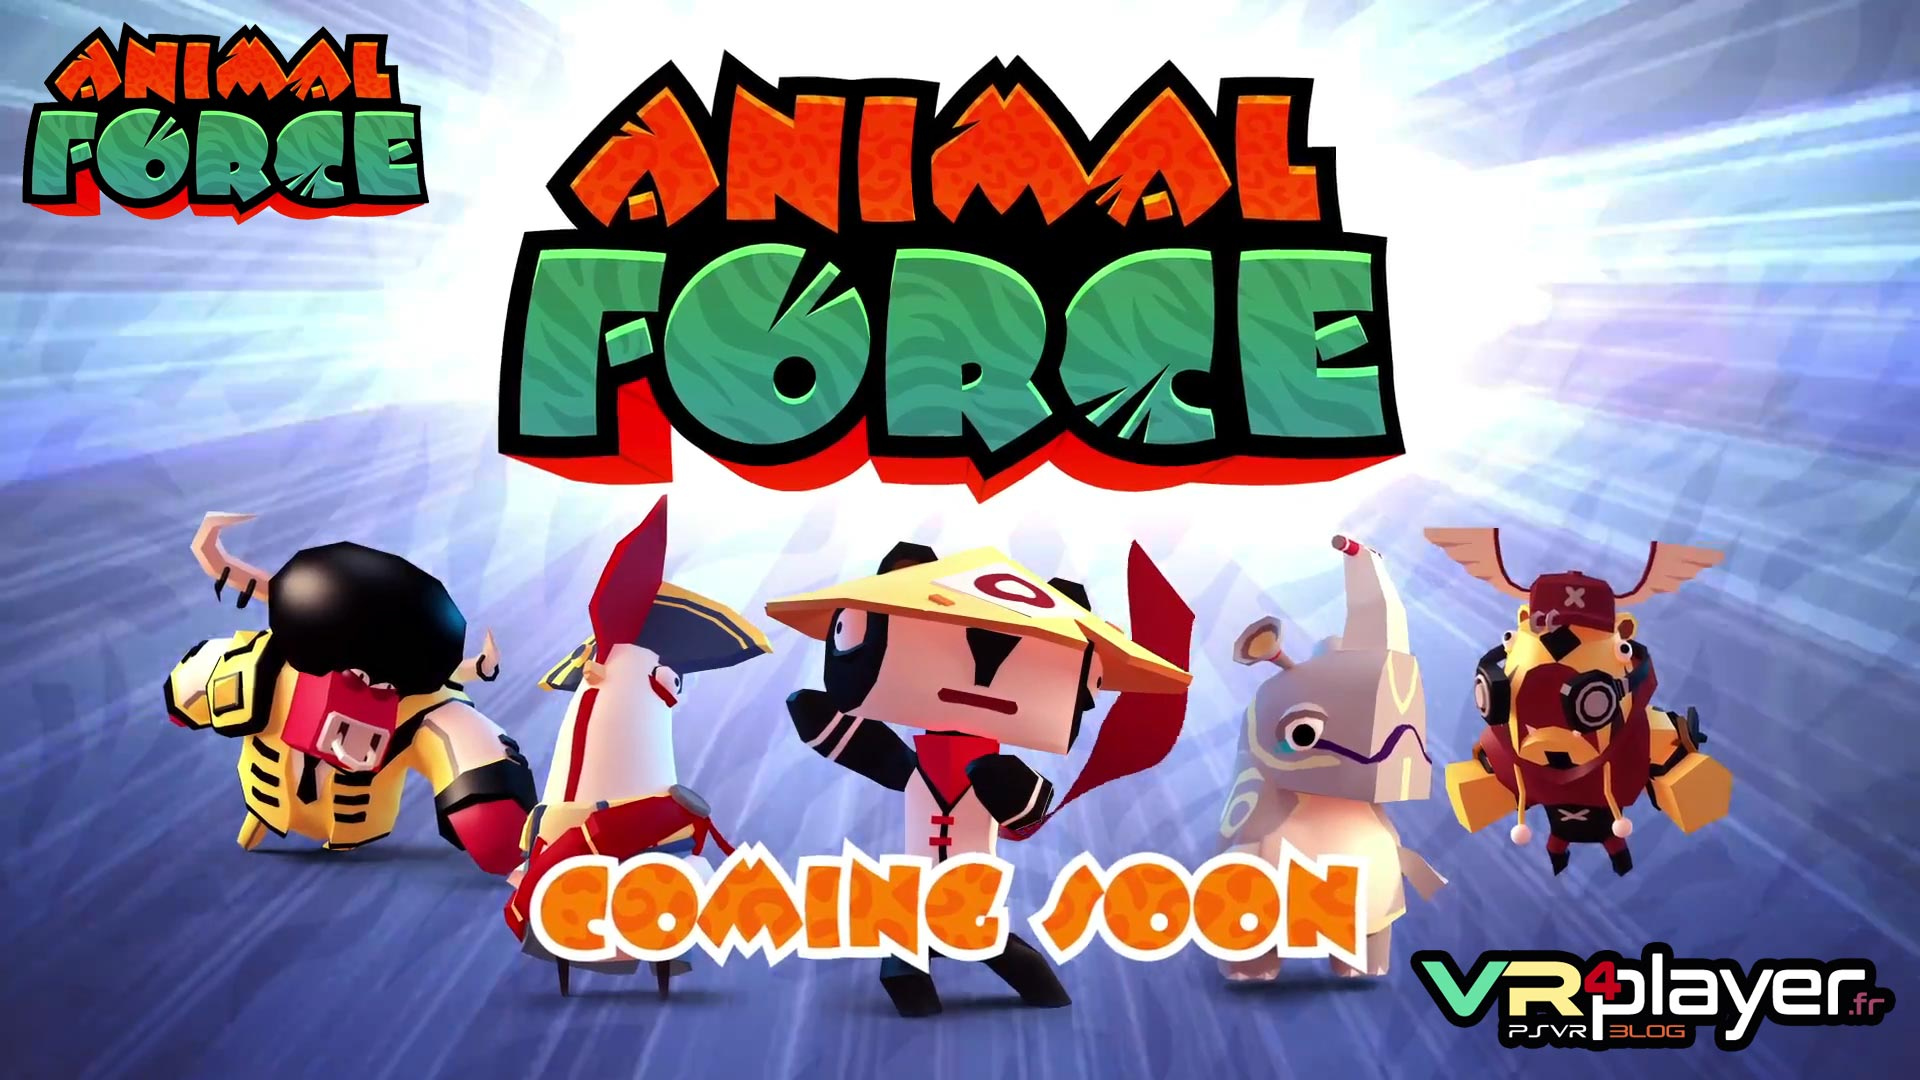 Animal Force PSVR VR4player.fr